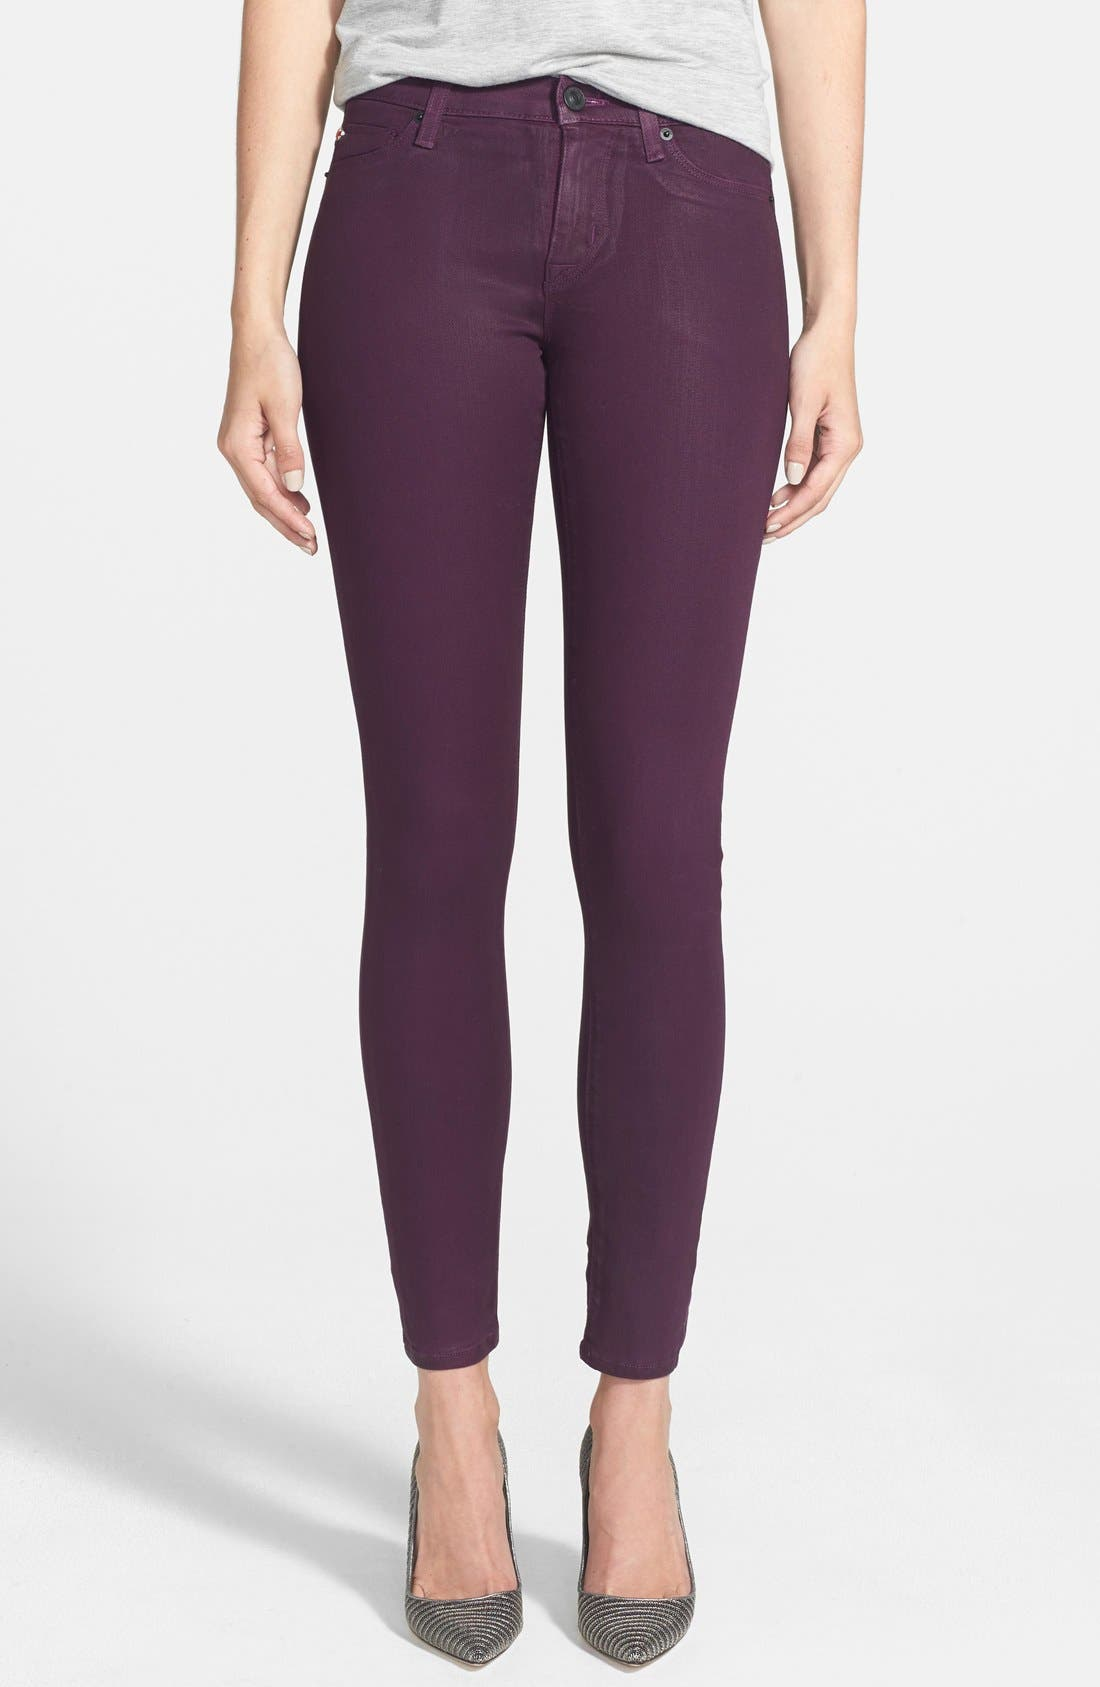 Main Image - Hudson Jeans 'Nico' Mid Rise Skinny Stretch Jeans (Mulberry Wax)